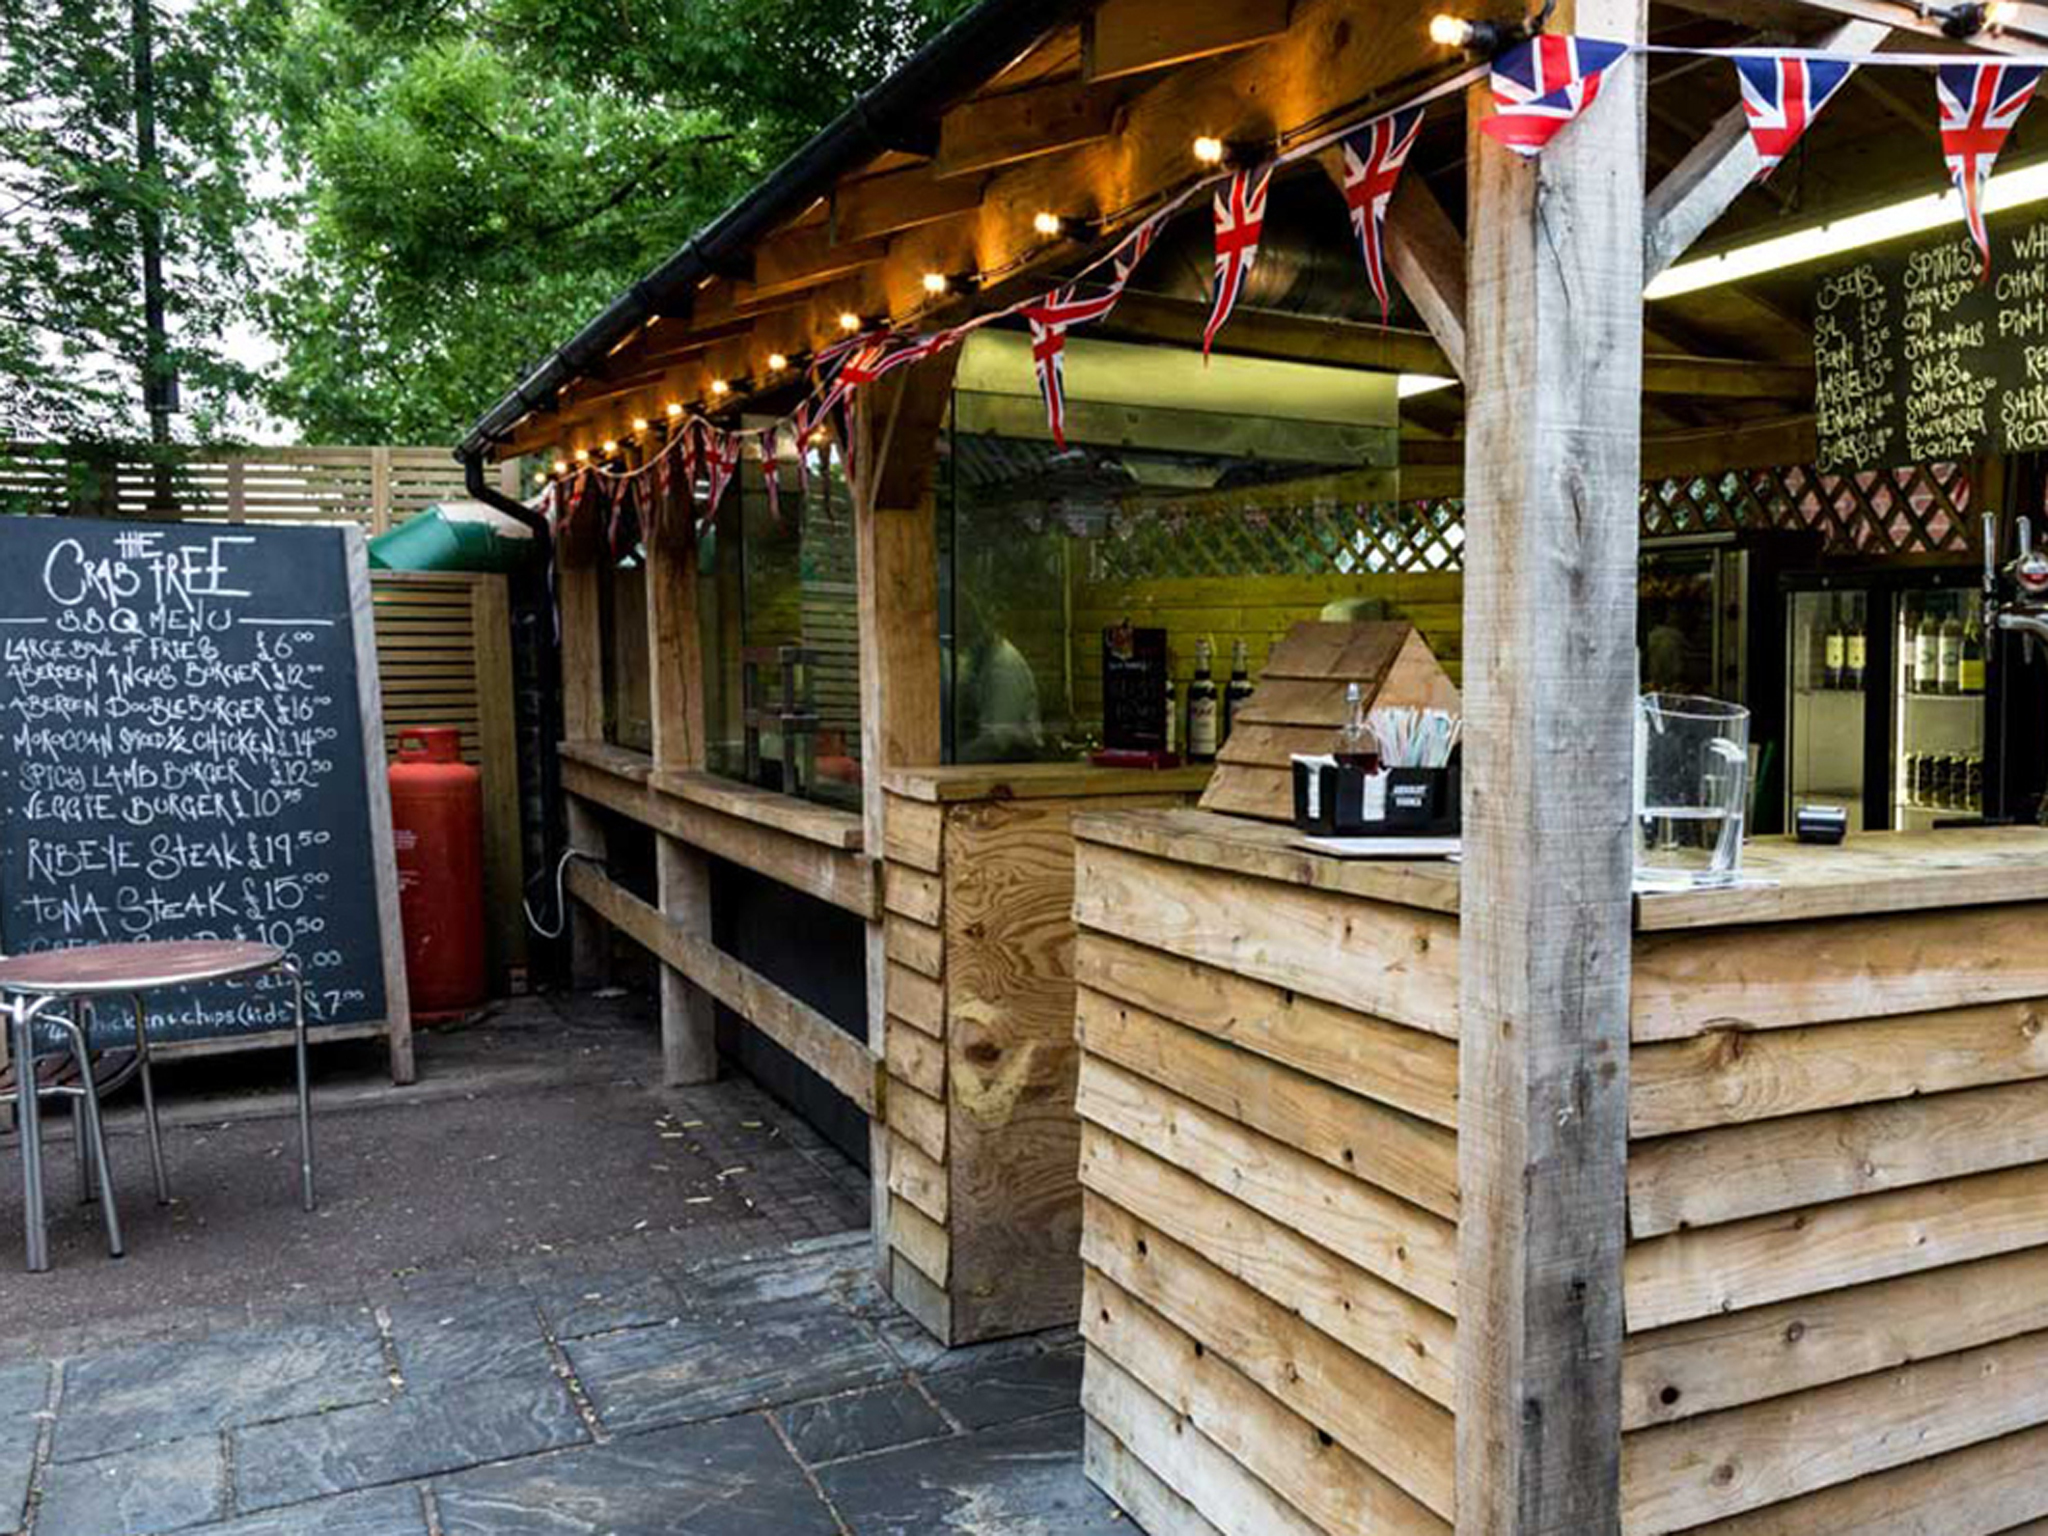 london's best barbecues, crab tree